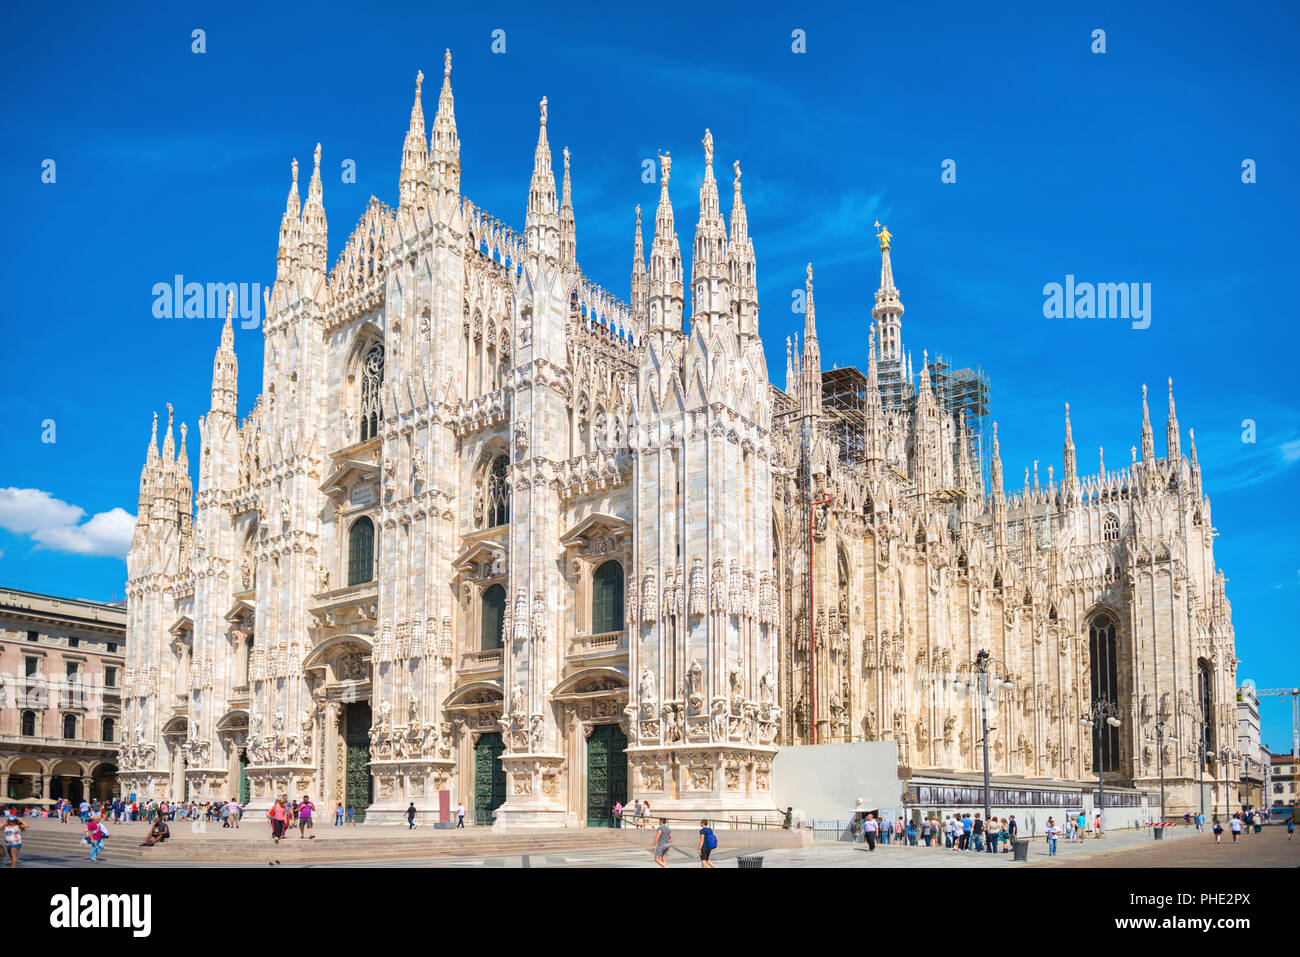 Daytime view of famous Milan Cathedral Duomo - Stock Image